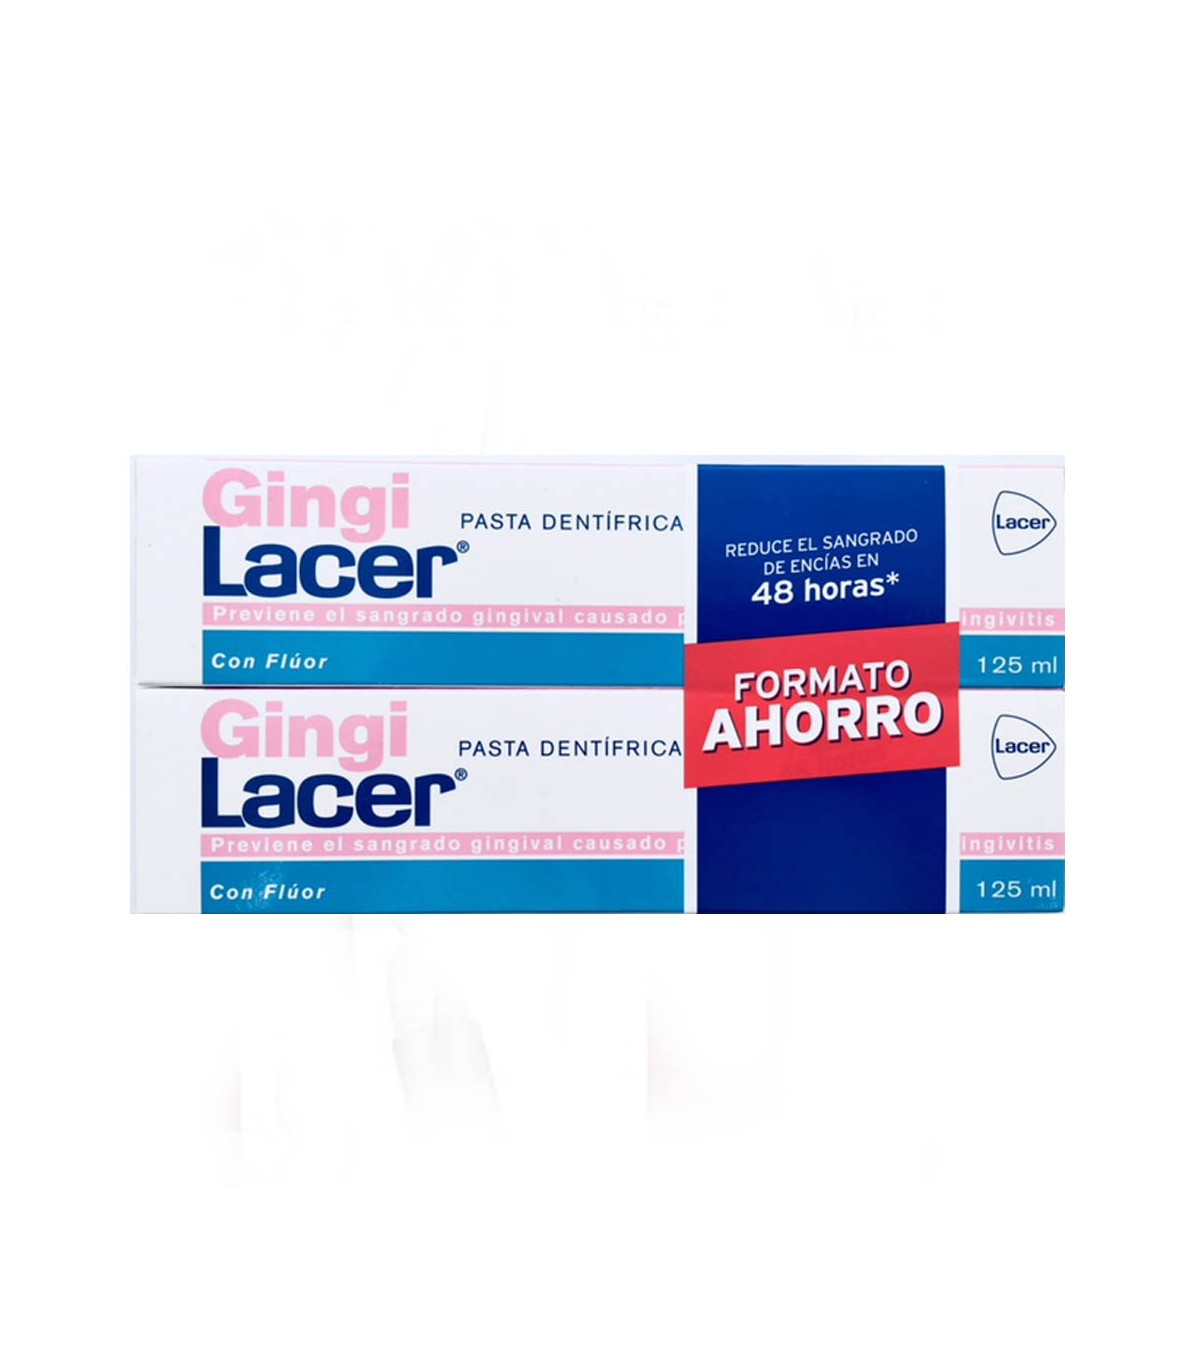 Lacer Gingilacer Dentífrico  2x125 ml